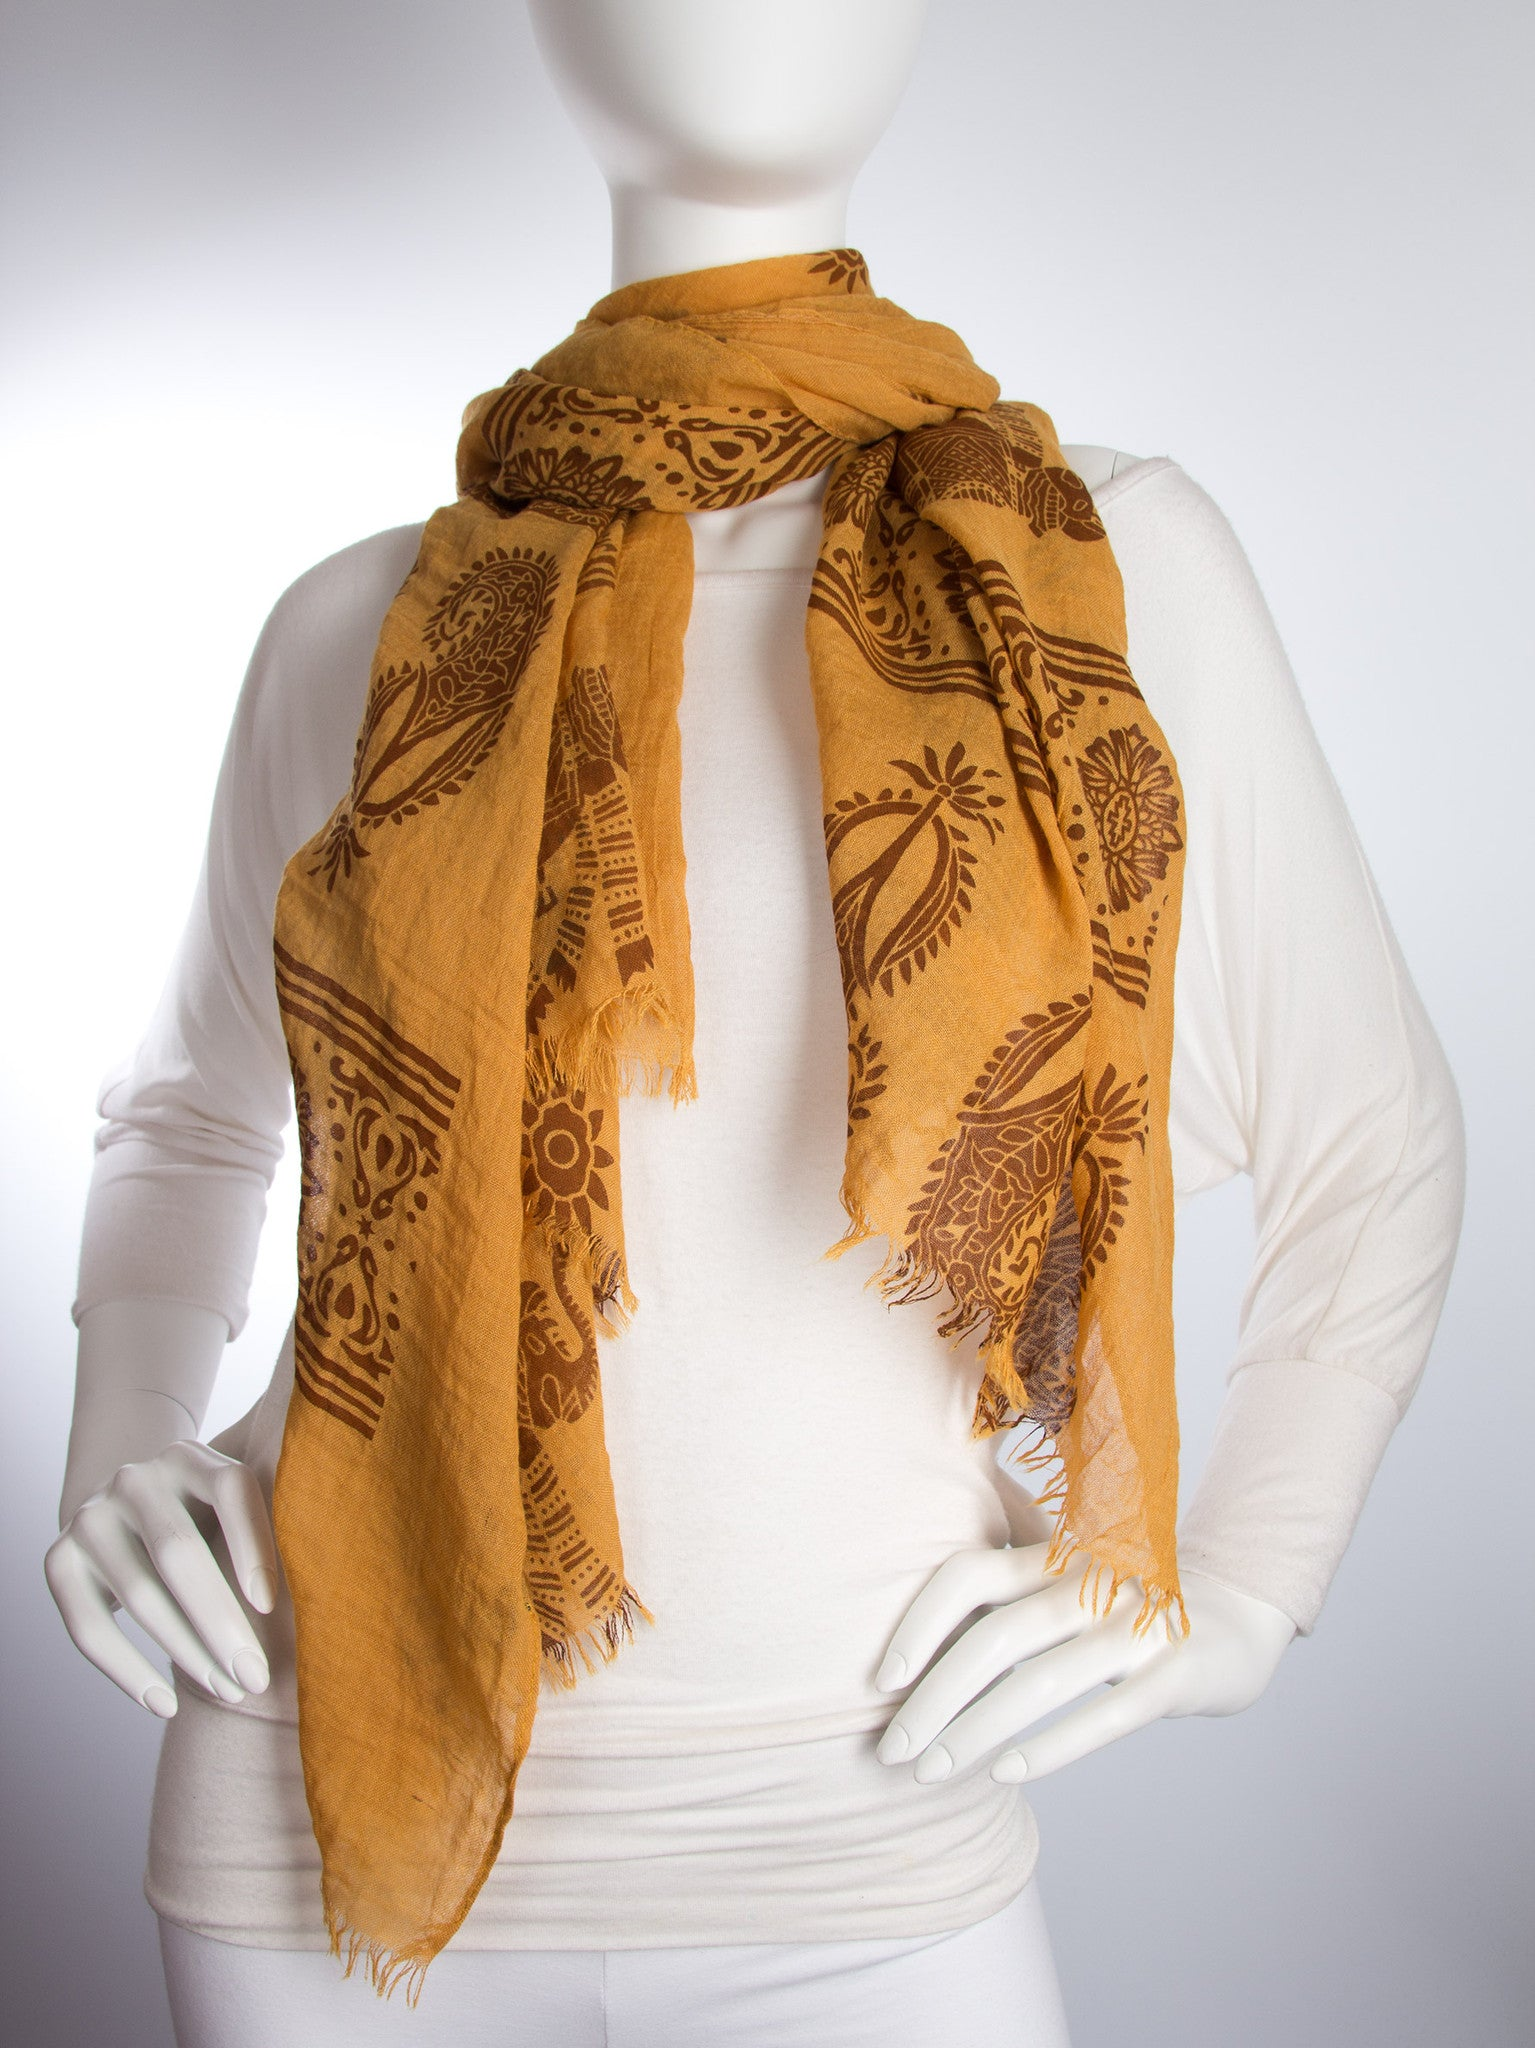 Scarves - Gajai Shawl,100% Cotton Paisley Indian Elephant Print Scarf -() Bohomonde  - 9